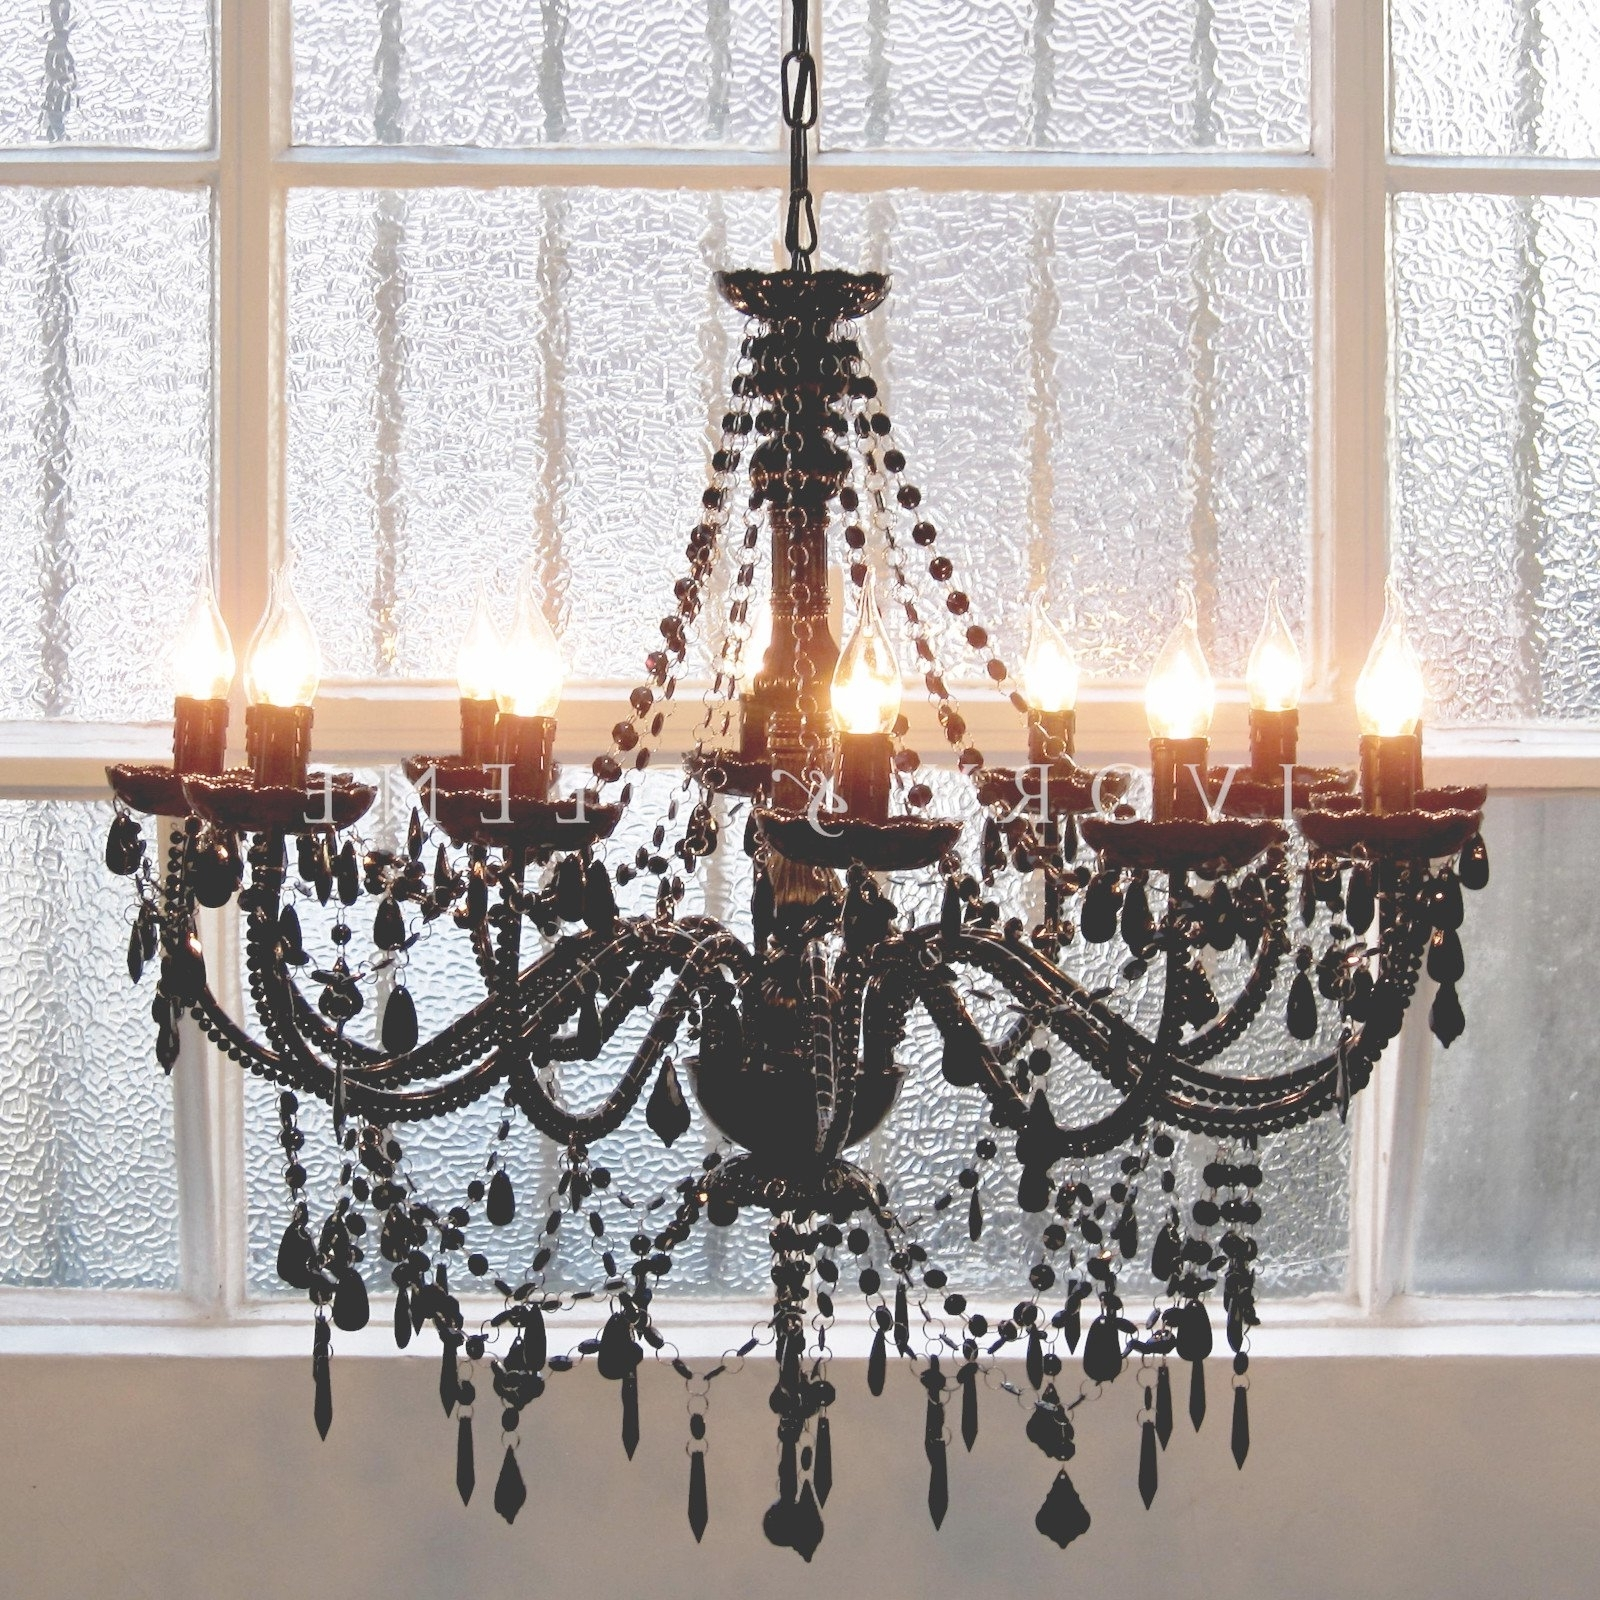 2018 Awesome Chandelier 12 Light French Provincial Black Cassie – Ivory Throughout Large Black Chandelier (View 11 of 15)